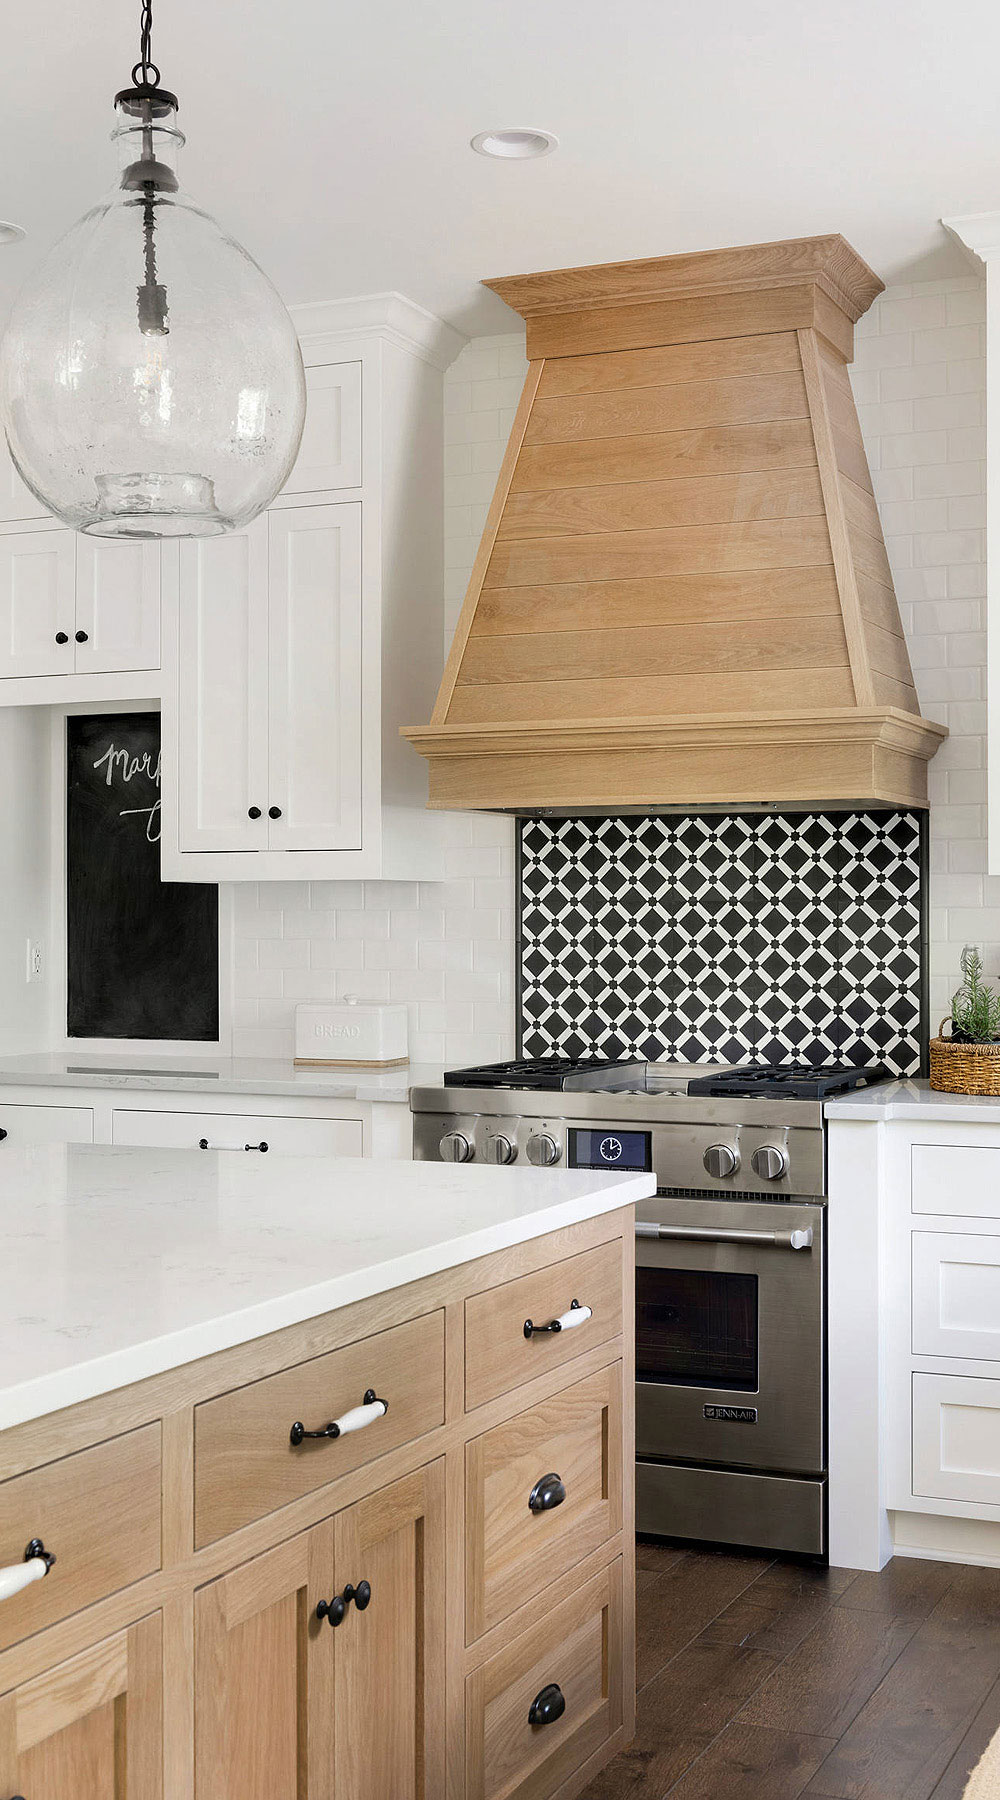 19 Black White Kitchen Backsplash Ideas Make It Contrast